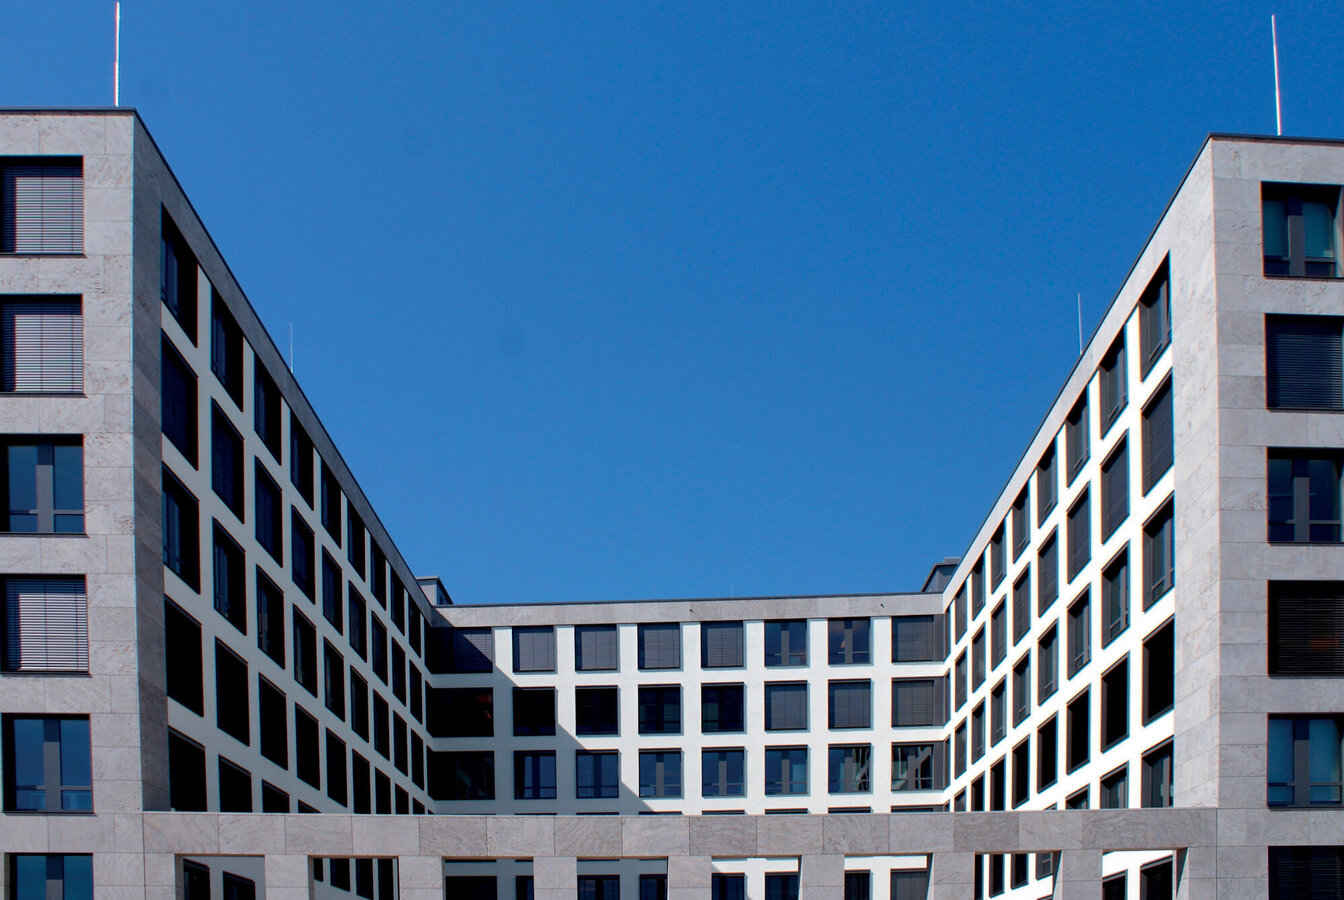 CW 50 Curtain Walls - Office building MK3 Office Building located in Berlin, Germany